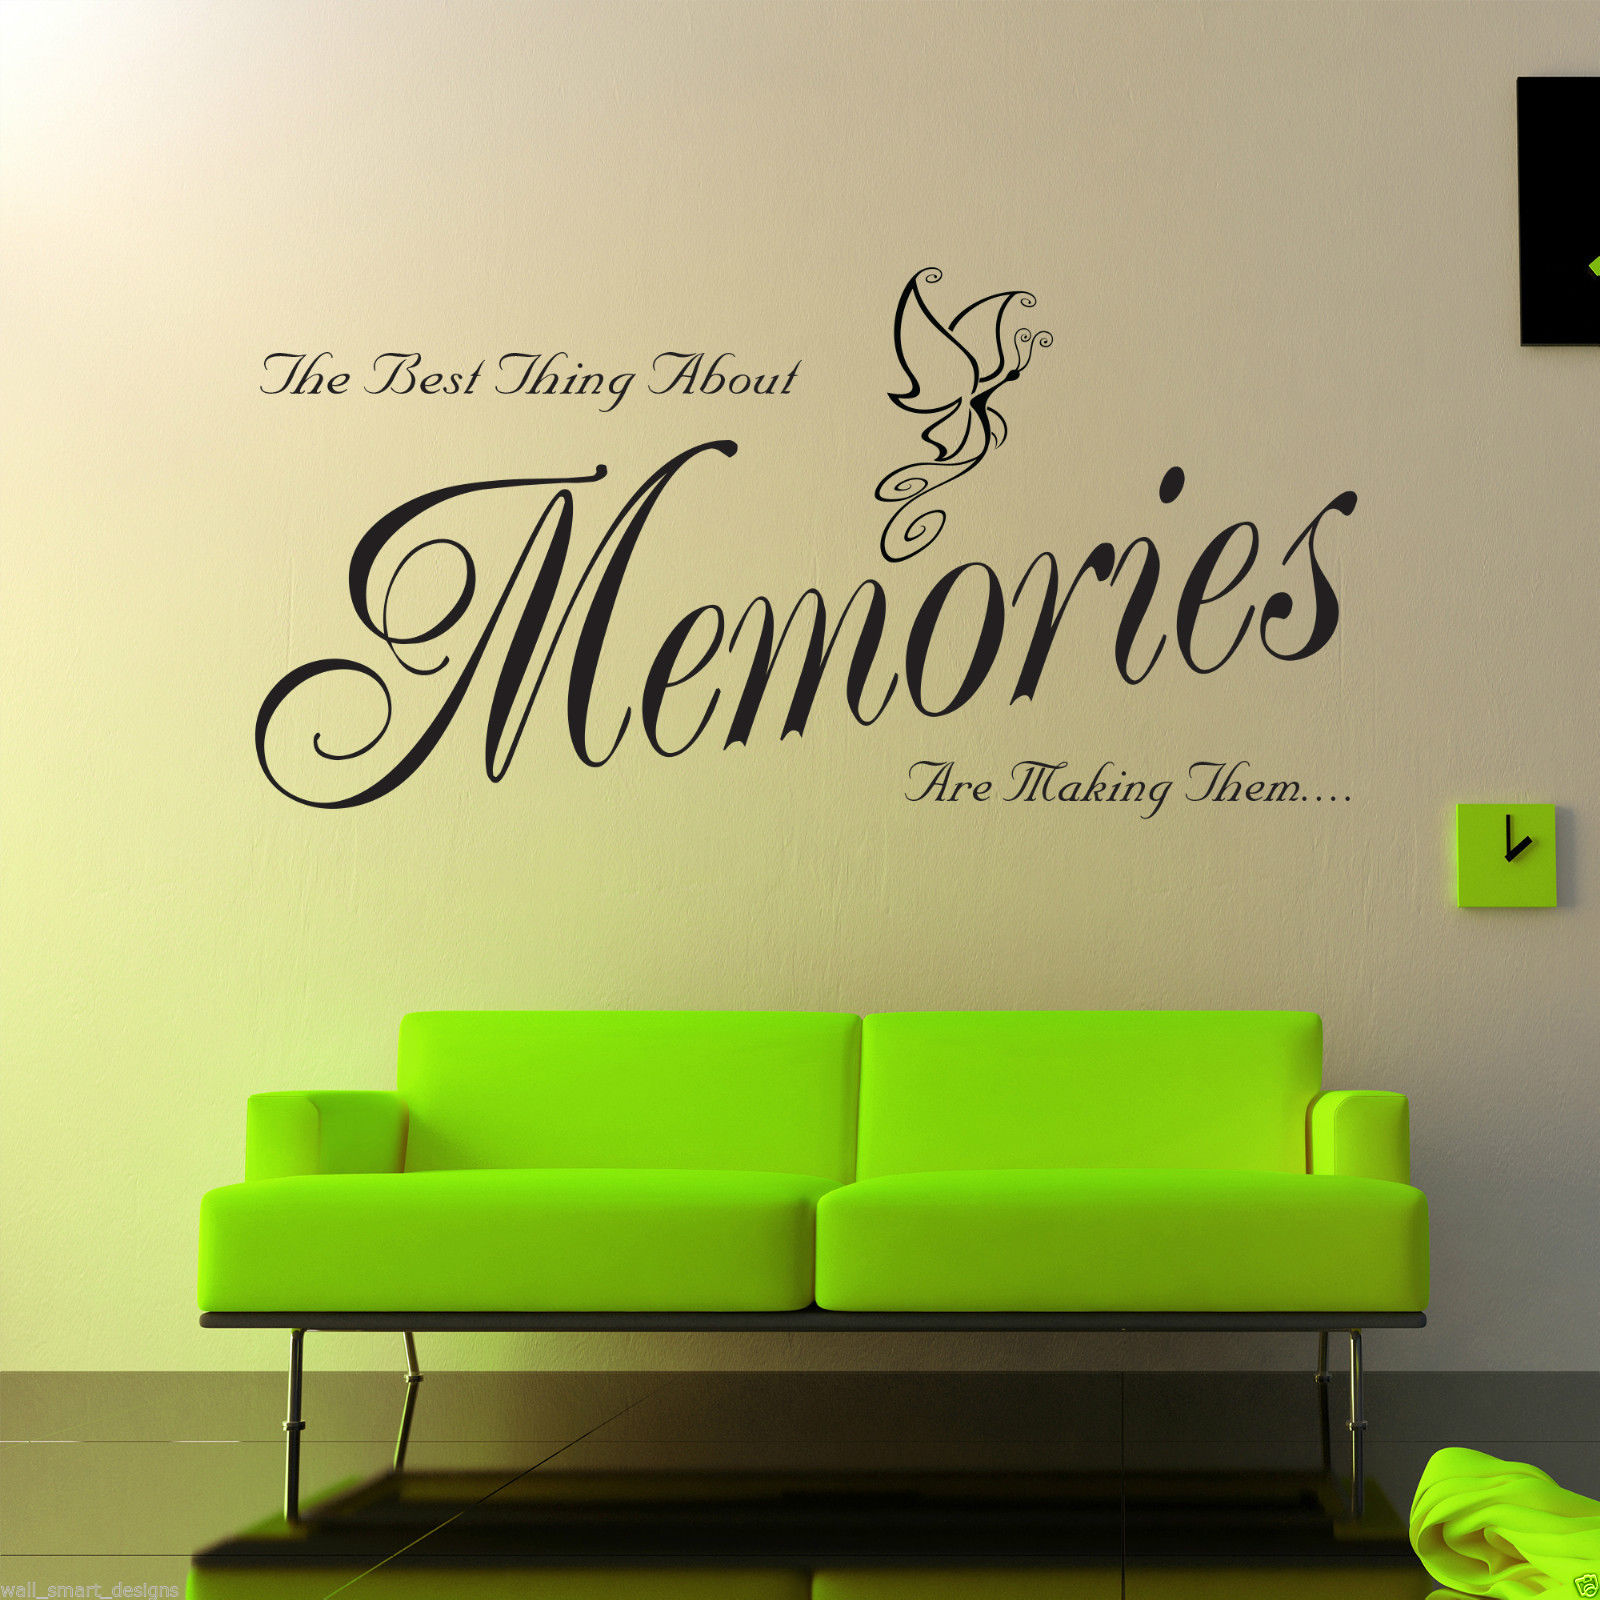 Souvenirs autocollant art mur salon chambre citation sticker mural pochoir - Pochoir mural chambre ...